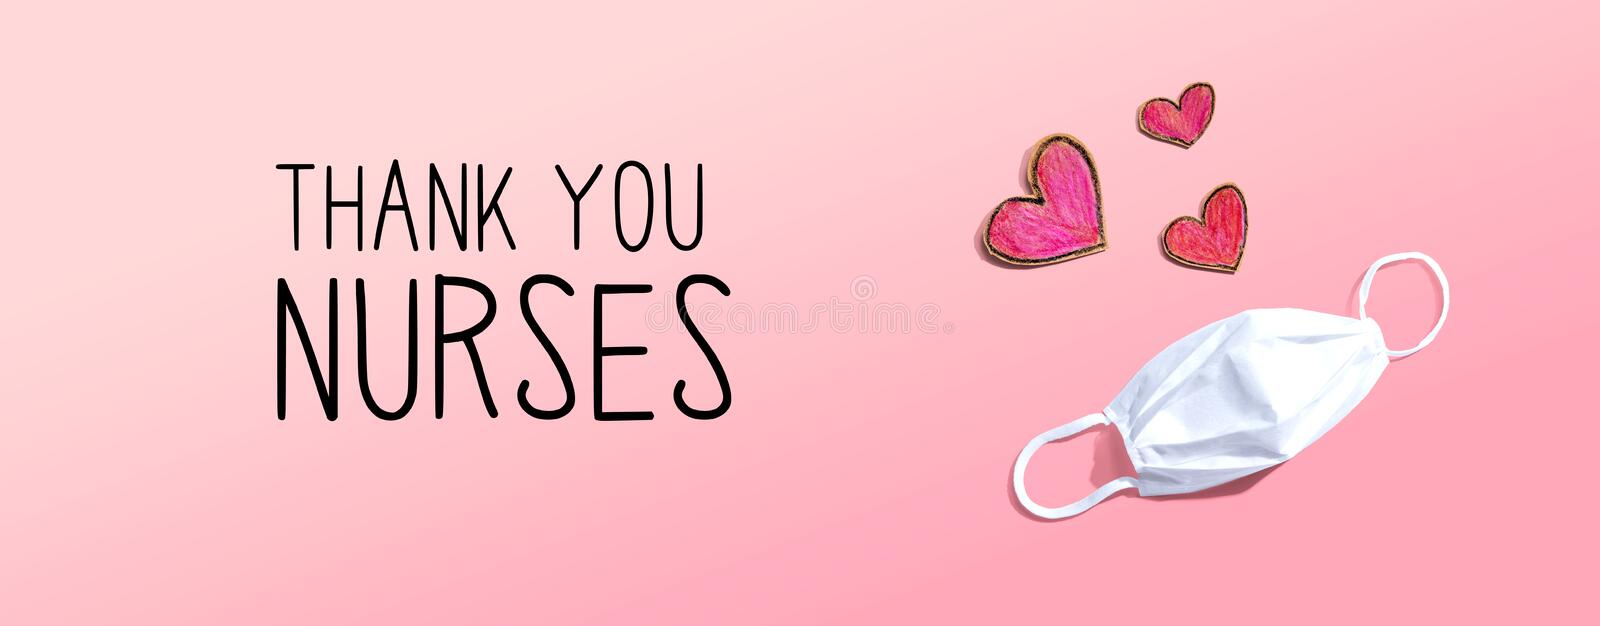 Thank You Nurses message with face mask and heart drawings. Thank You Nurses message with a face mask and heart drawings stock image